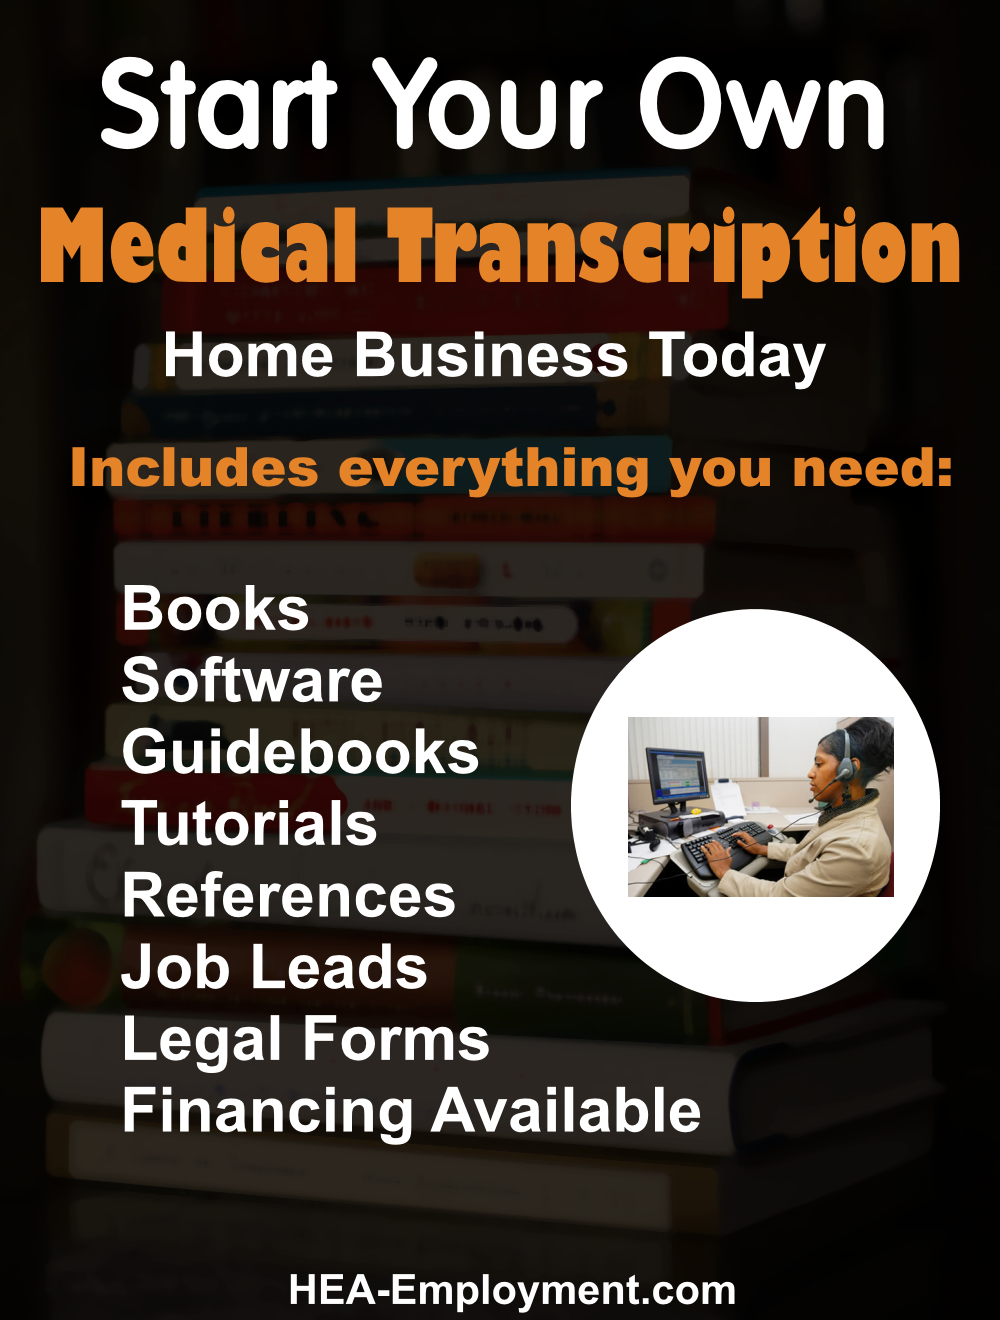 Start your own medical transcription legitimate home based business. Fully equipped home business package with everything you need to get started. Productivity software, tutorials, guidebooks, references, manuals, tax advice and legal forms are included with each kit. Be your own boss!